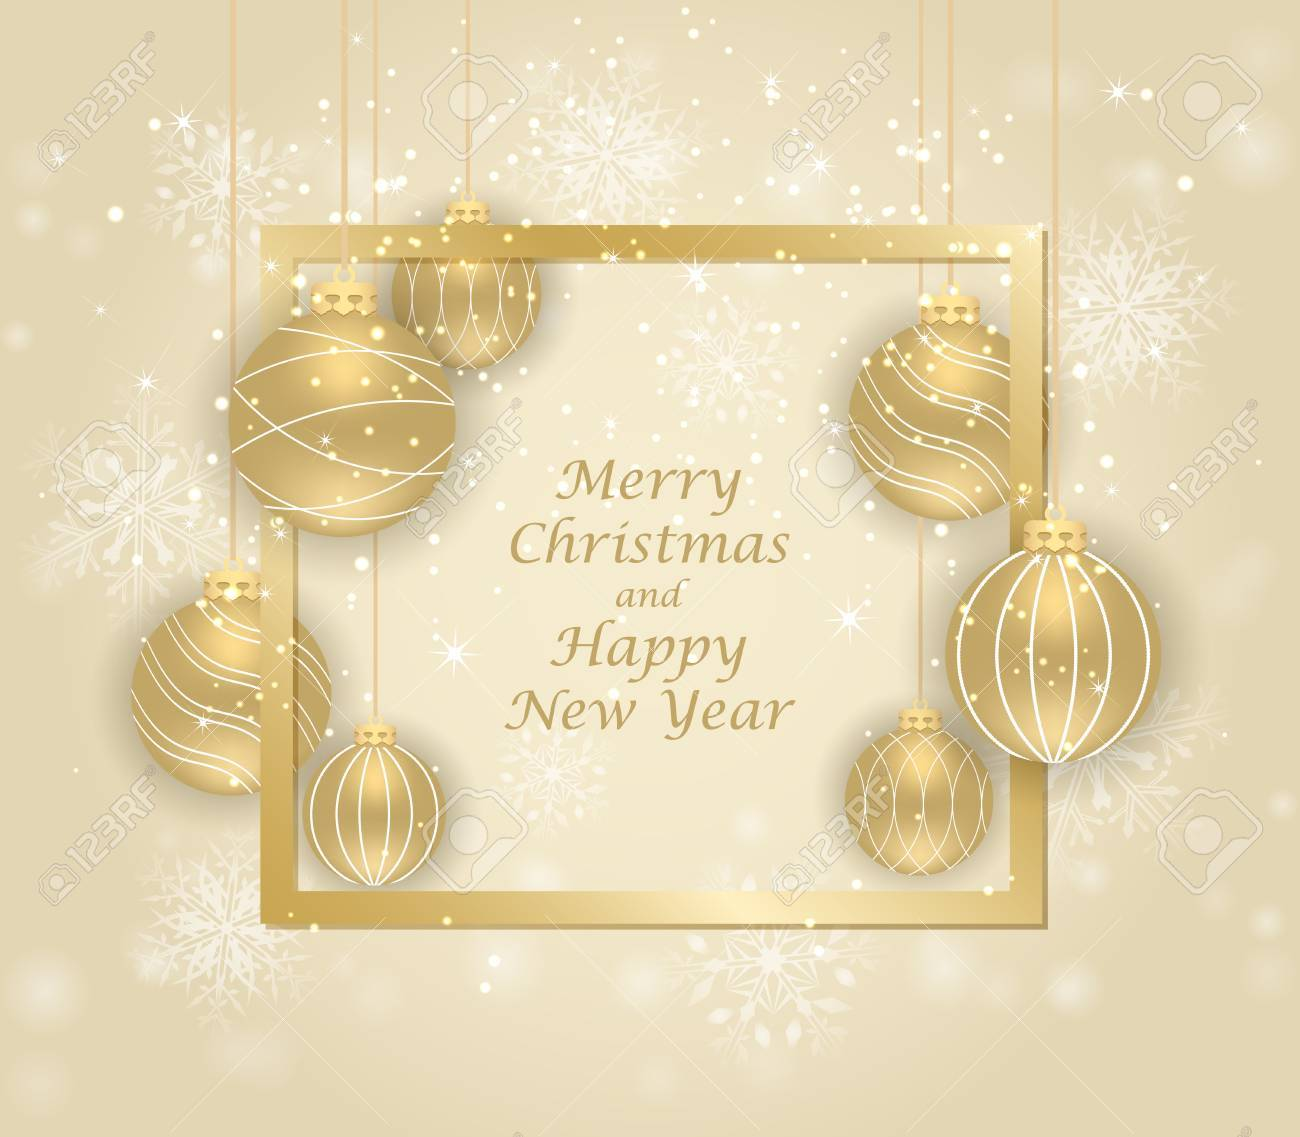 Merry Christmas And Happy New Year Beautiful Gift Card With